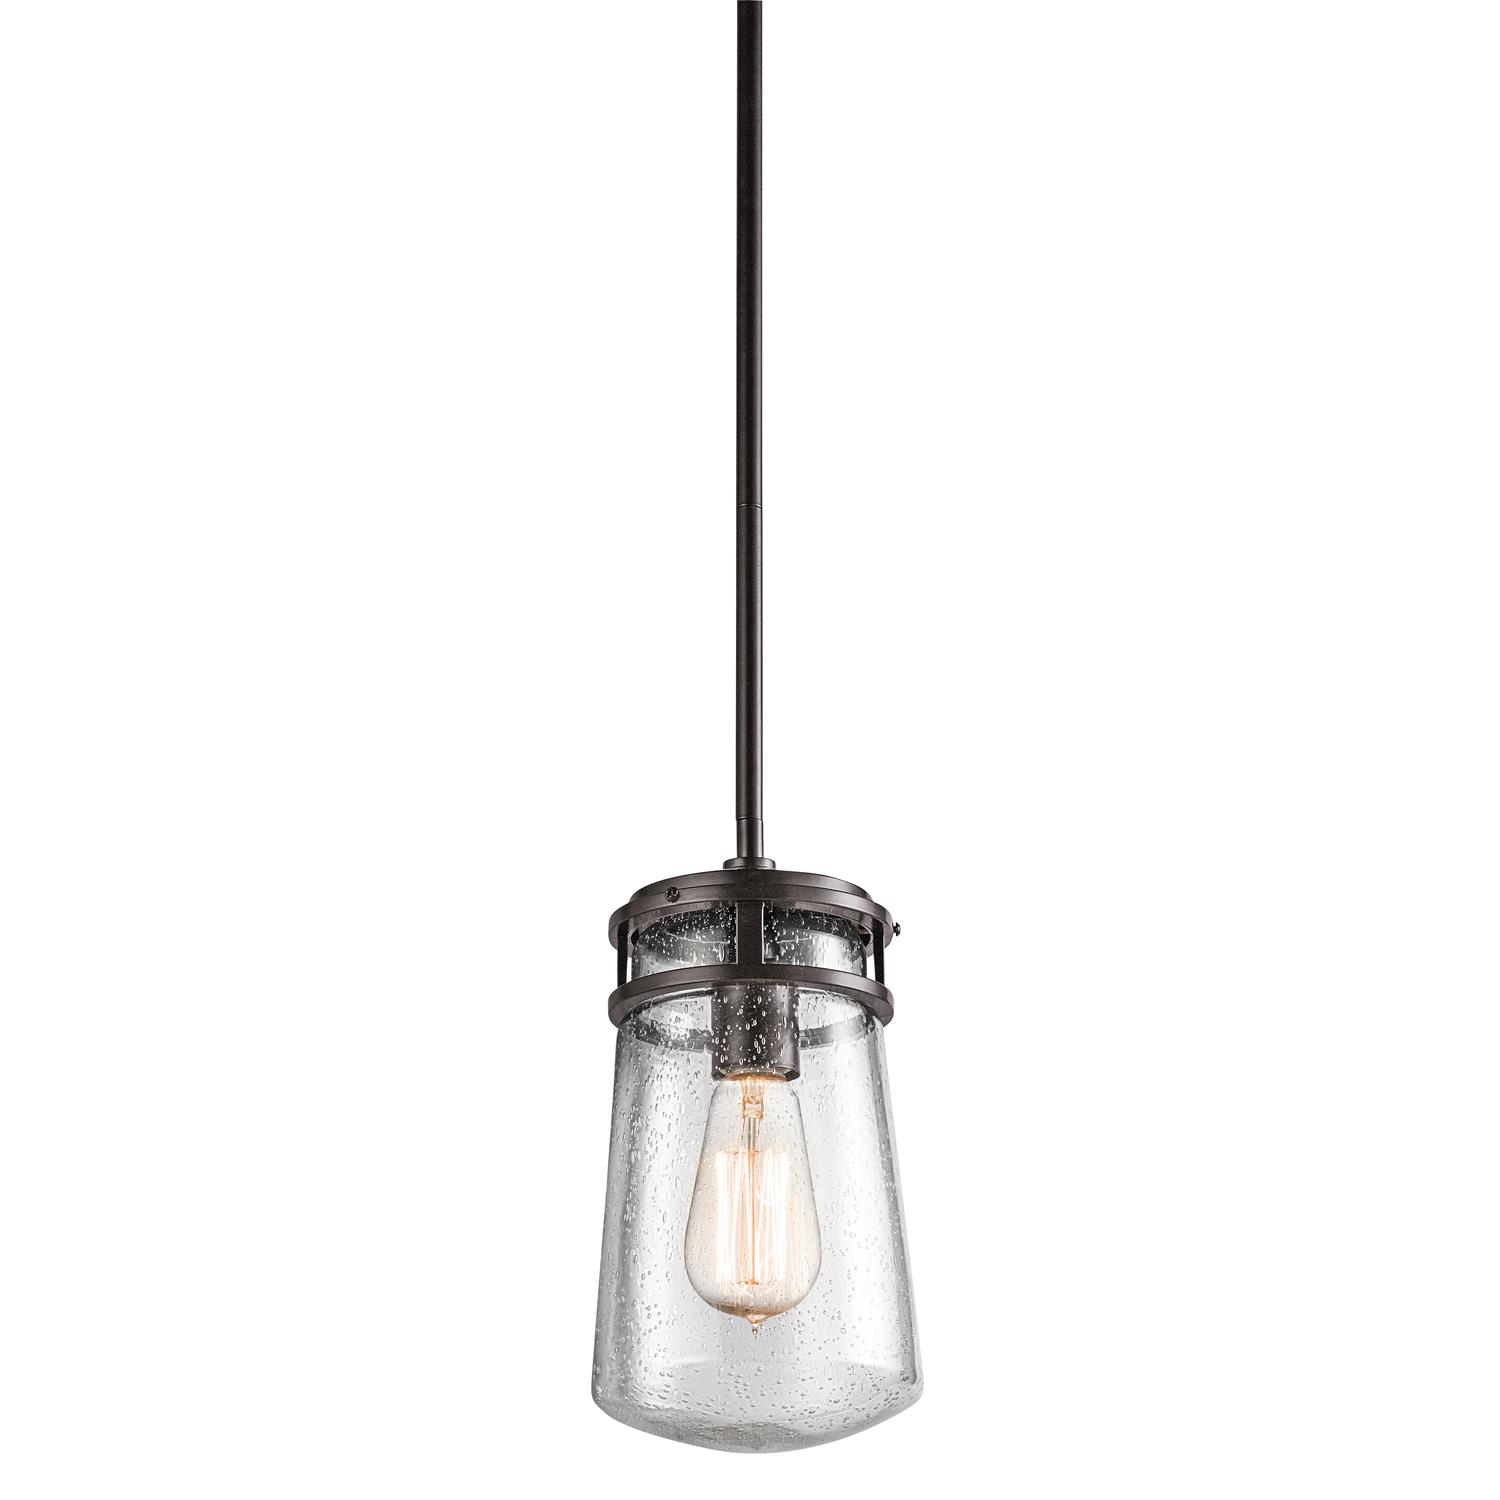 Primary image for Kichler 49447AZ Lyndon Outdoor Pendant 6in 1-light